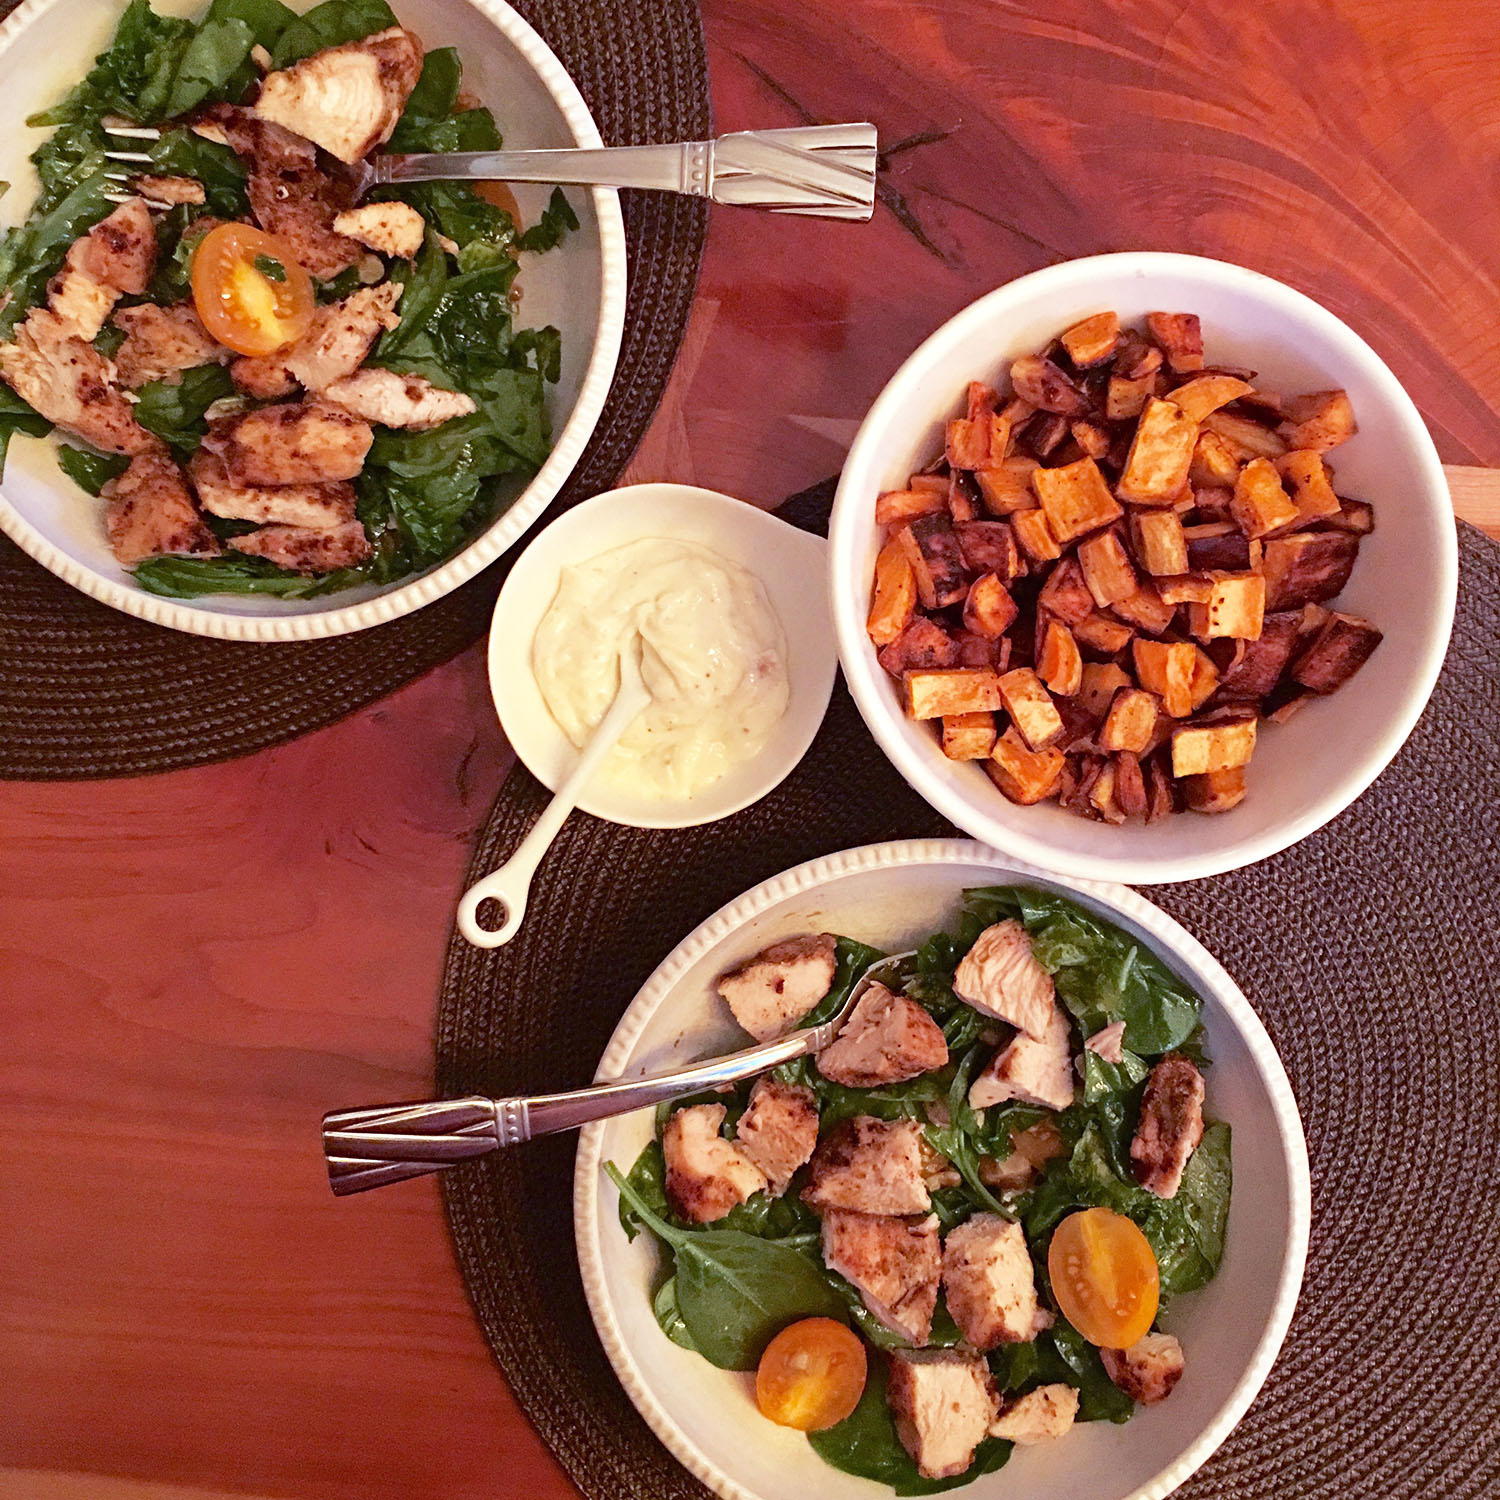 GRILLED CHICKEN SALAD WITH ROASTED POTATOES AND A ROASTED GARLIC AIOLI DIP